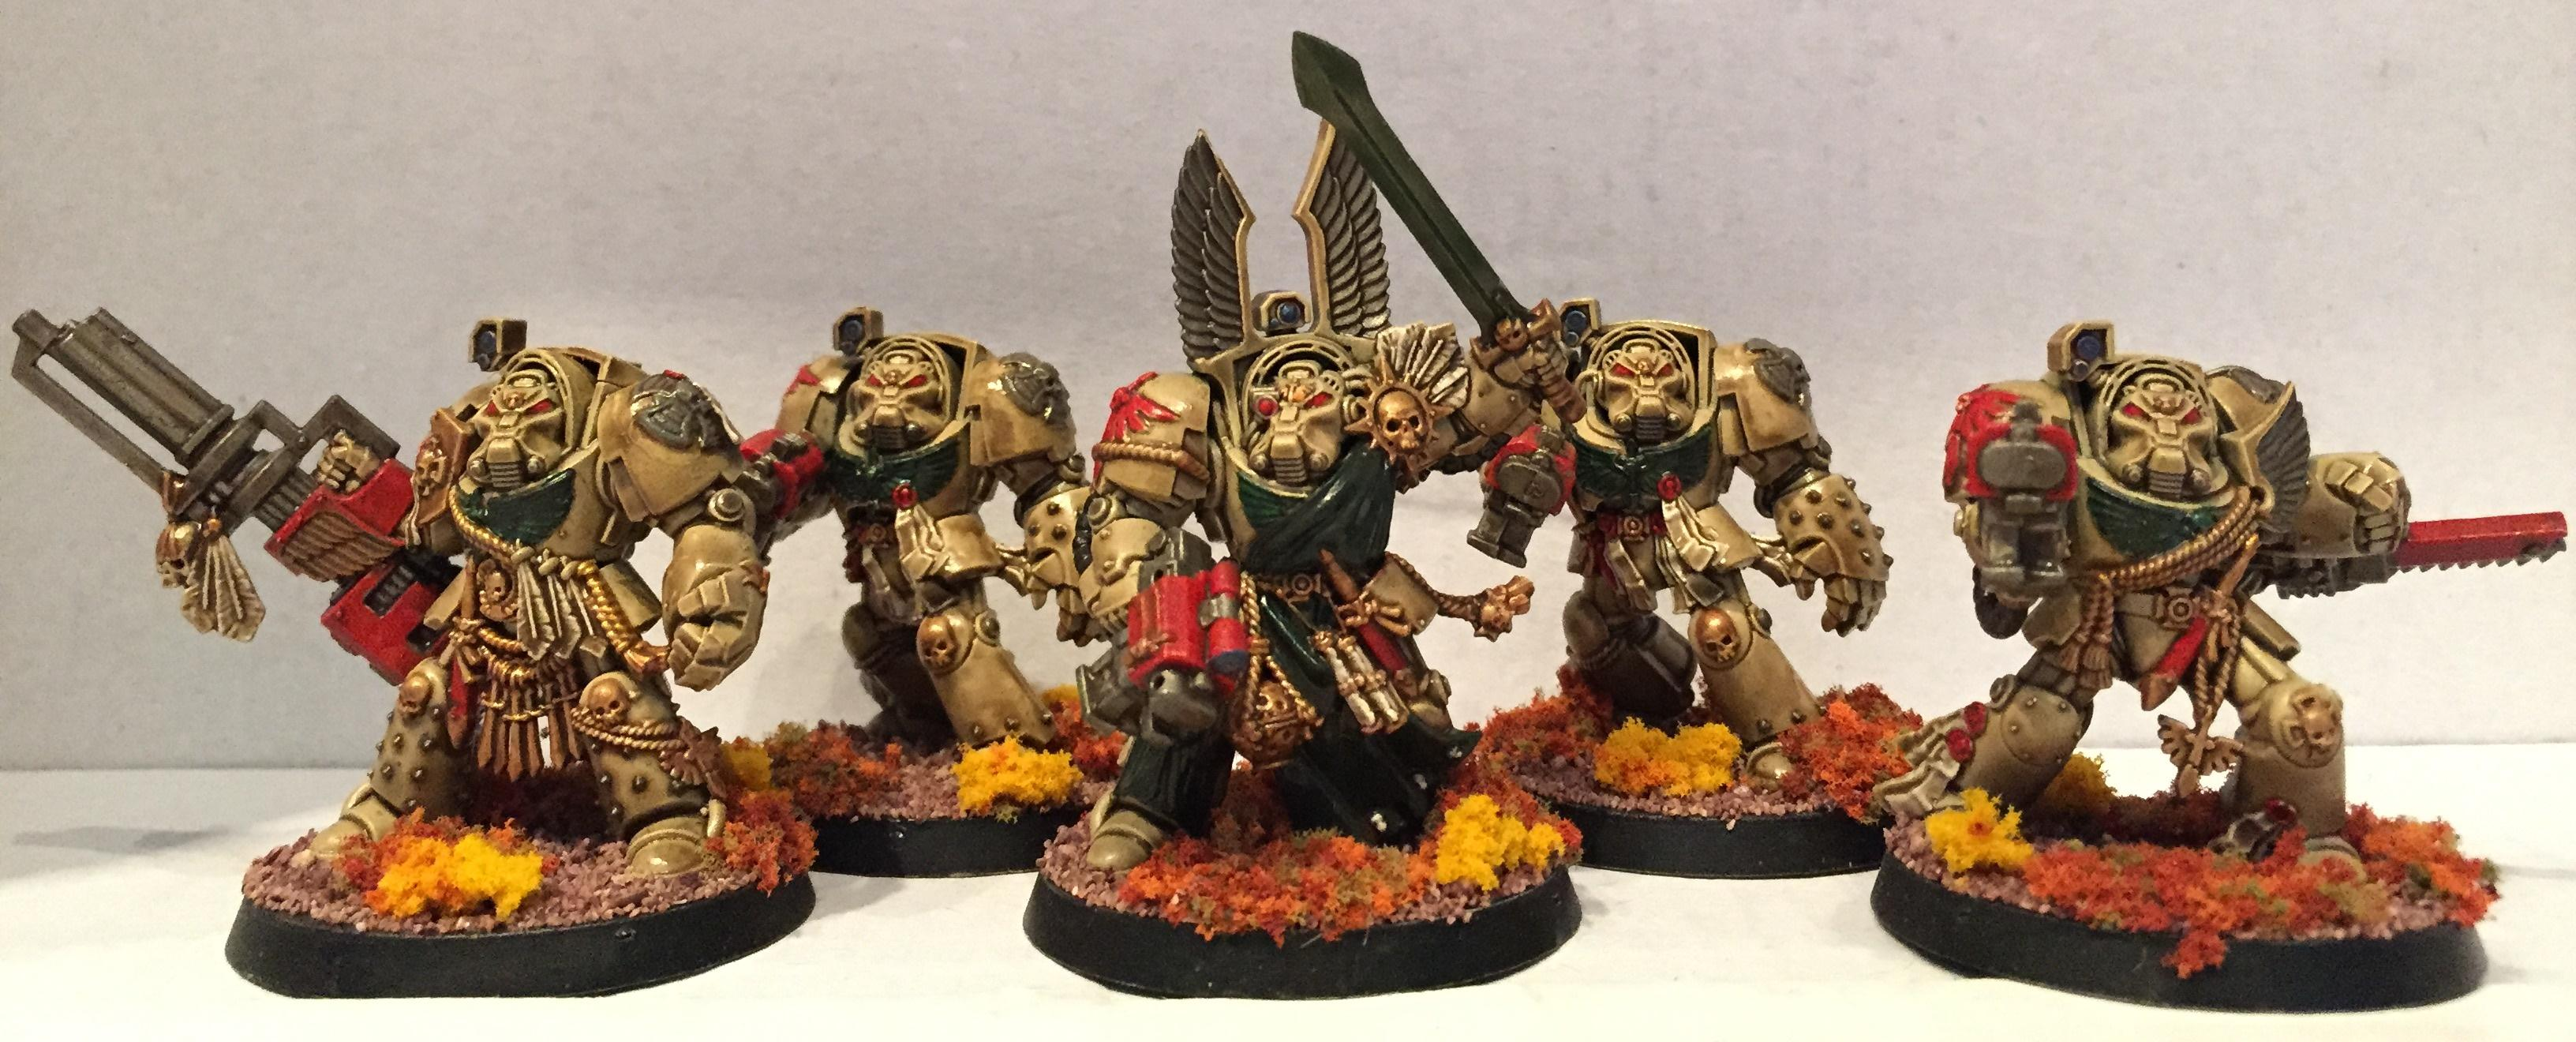 Dark Angels, Deathwing, Dipped, Petrifications, Space Marines, Terminator Armor, Warhammer 40,000, Washed